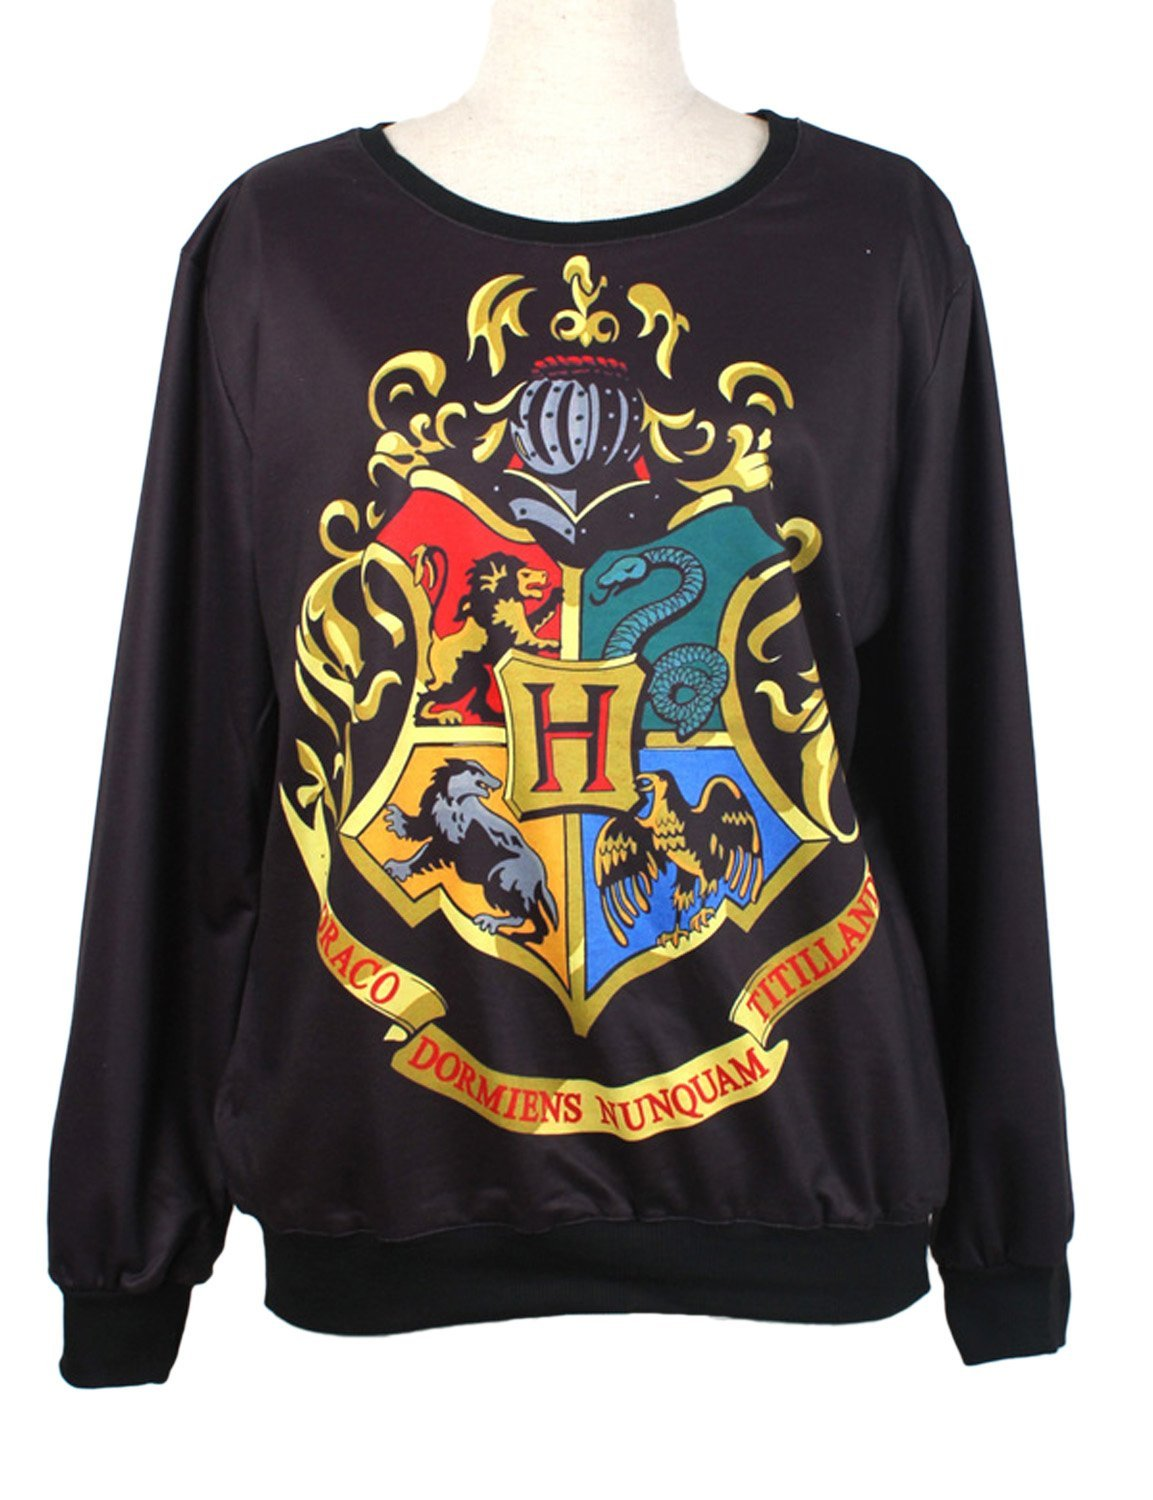 Pink queen fashion harry potter hogwarts crest pullover sweater sweatshirt at amazon women's clothing store: